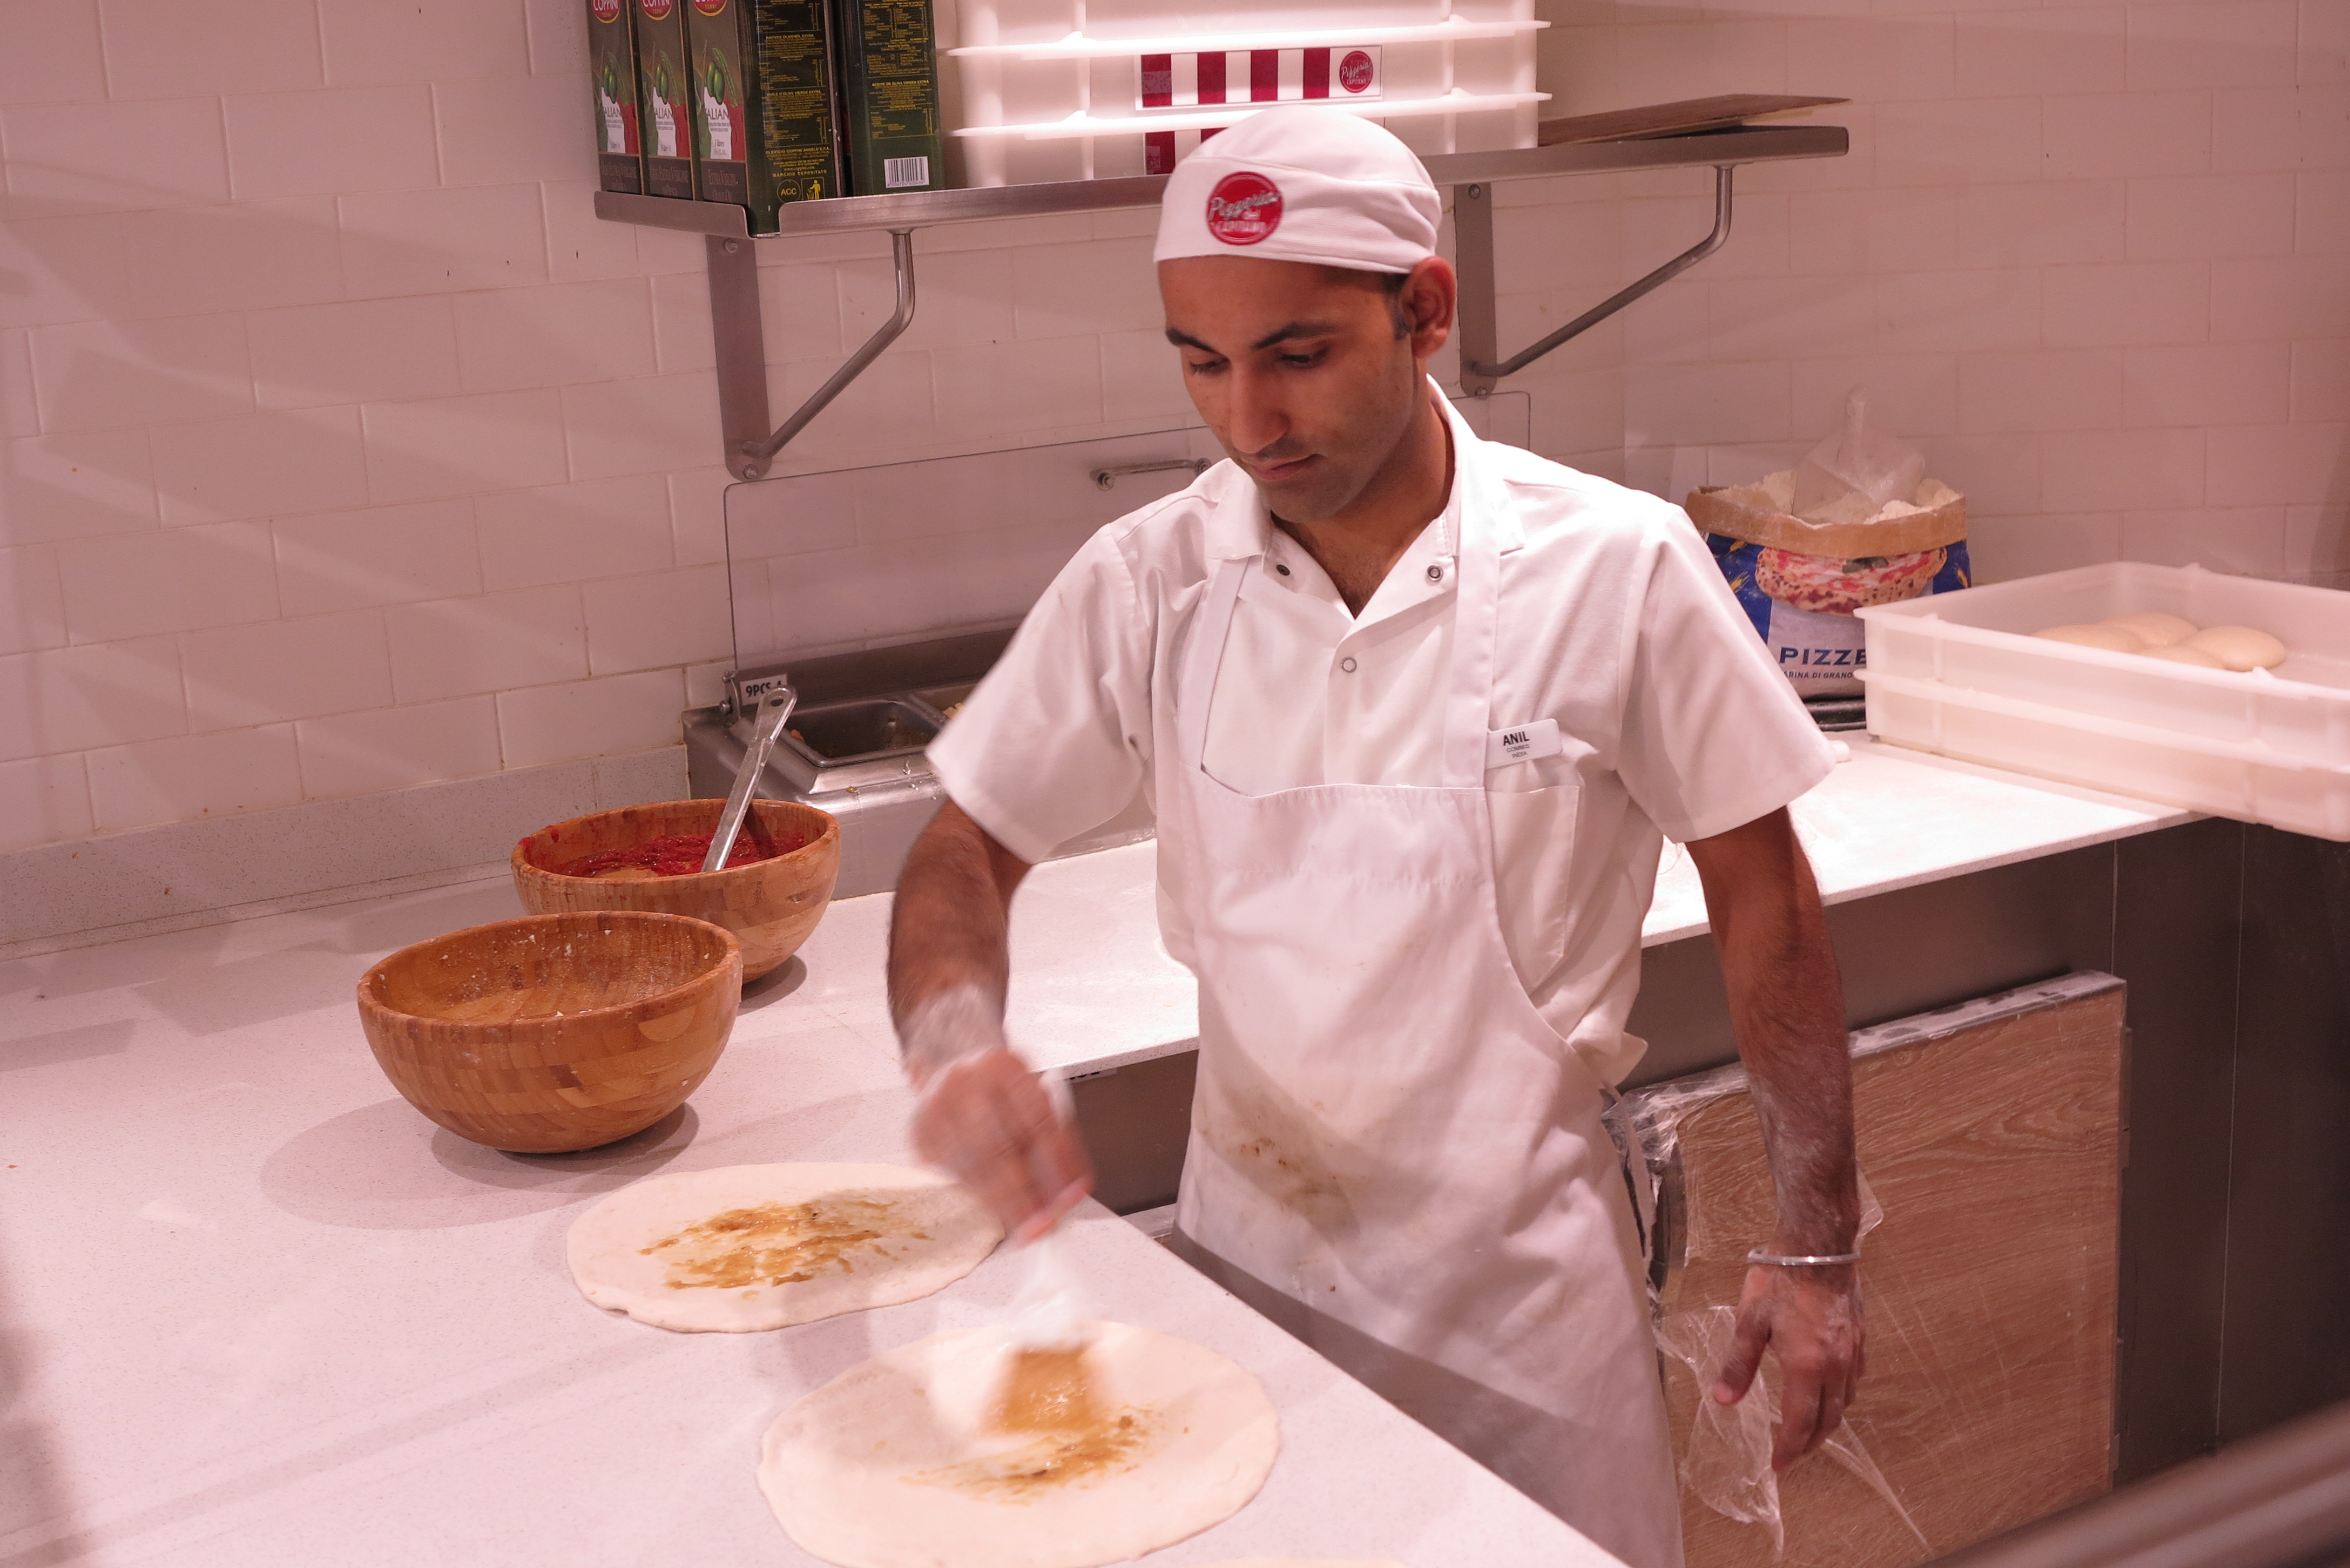 Still hungry? Check out the 24/7 hand-made pizza